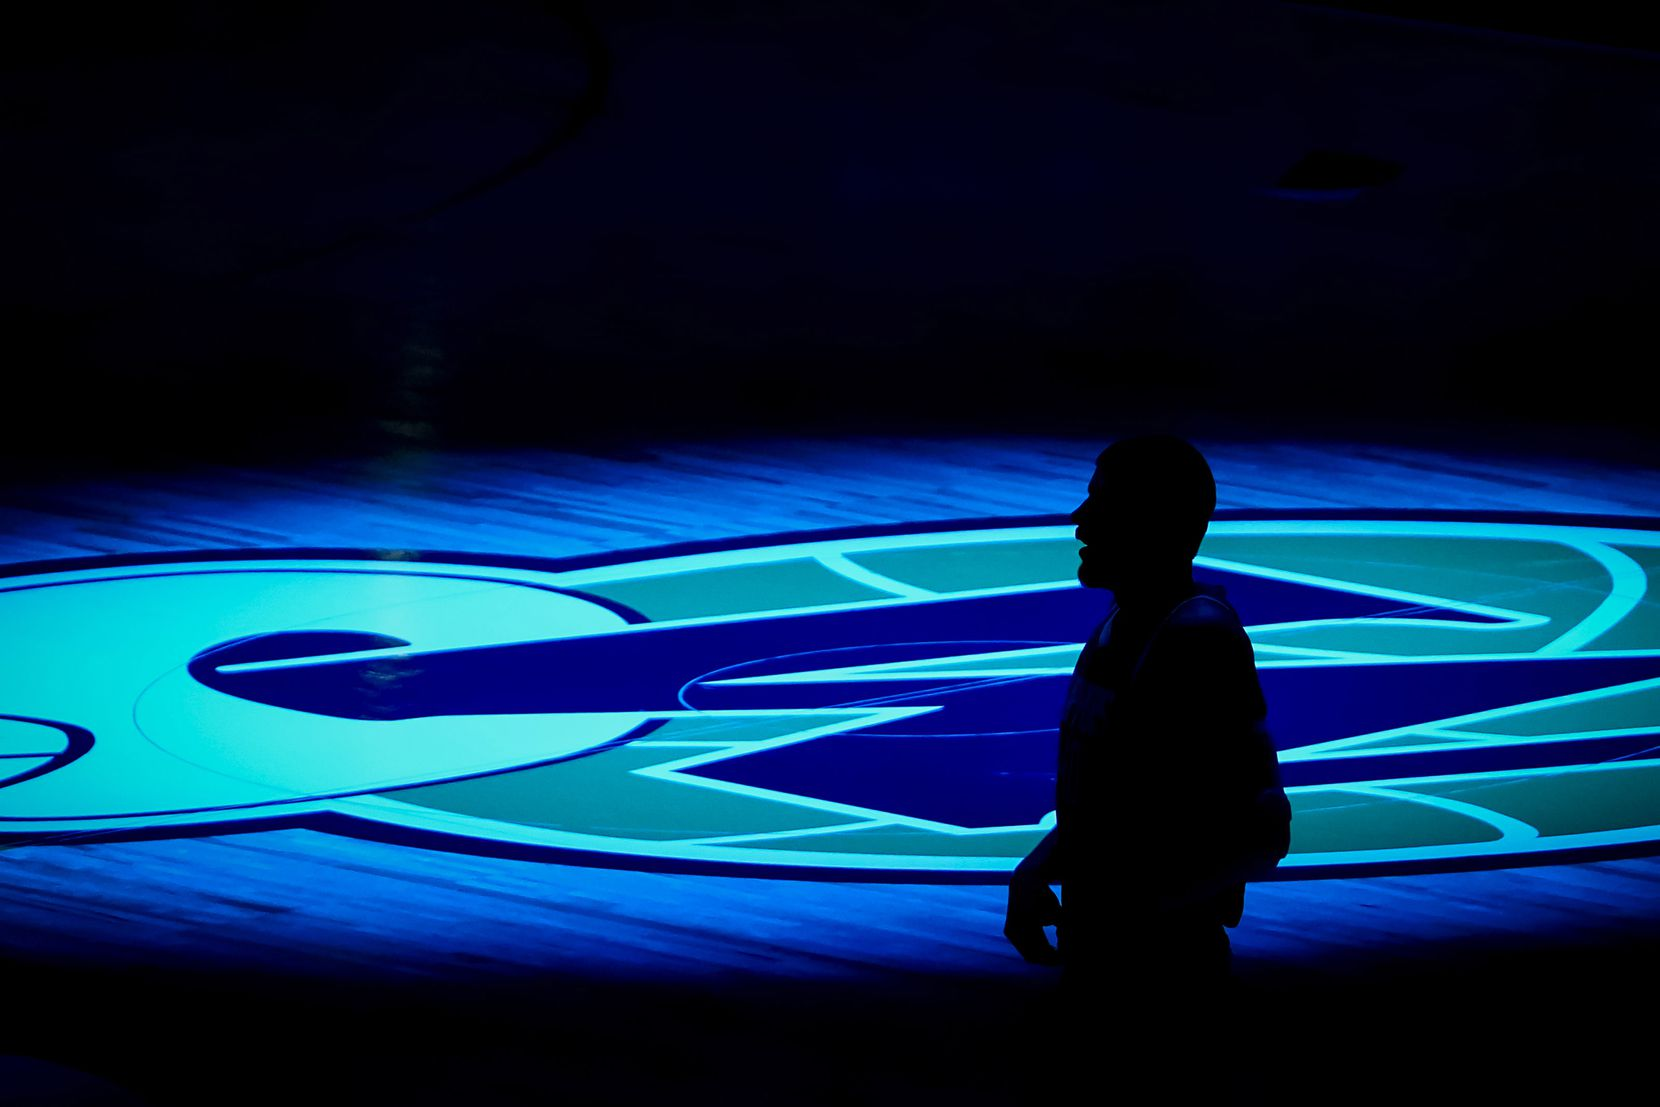 LA Clippers center Ivica Zubac is silhouetted against the Dallas Mavericks logo before an NBA basketball game at American Airlines Center on Wednesday, March 17, 2021, in Dallas.